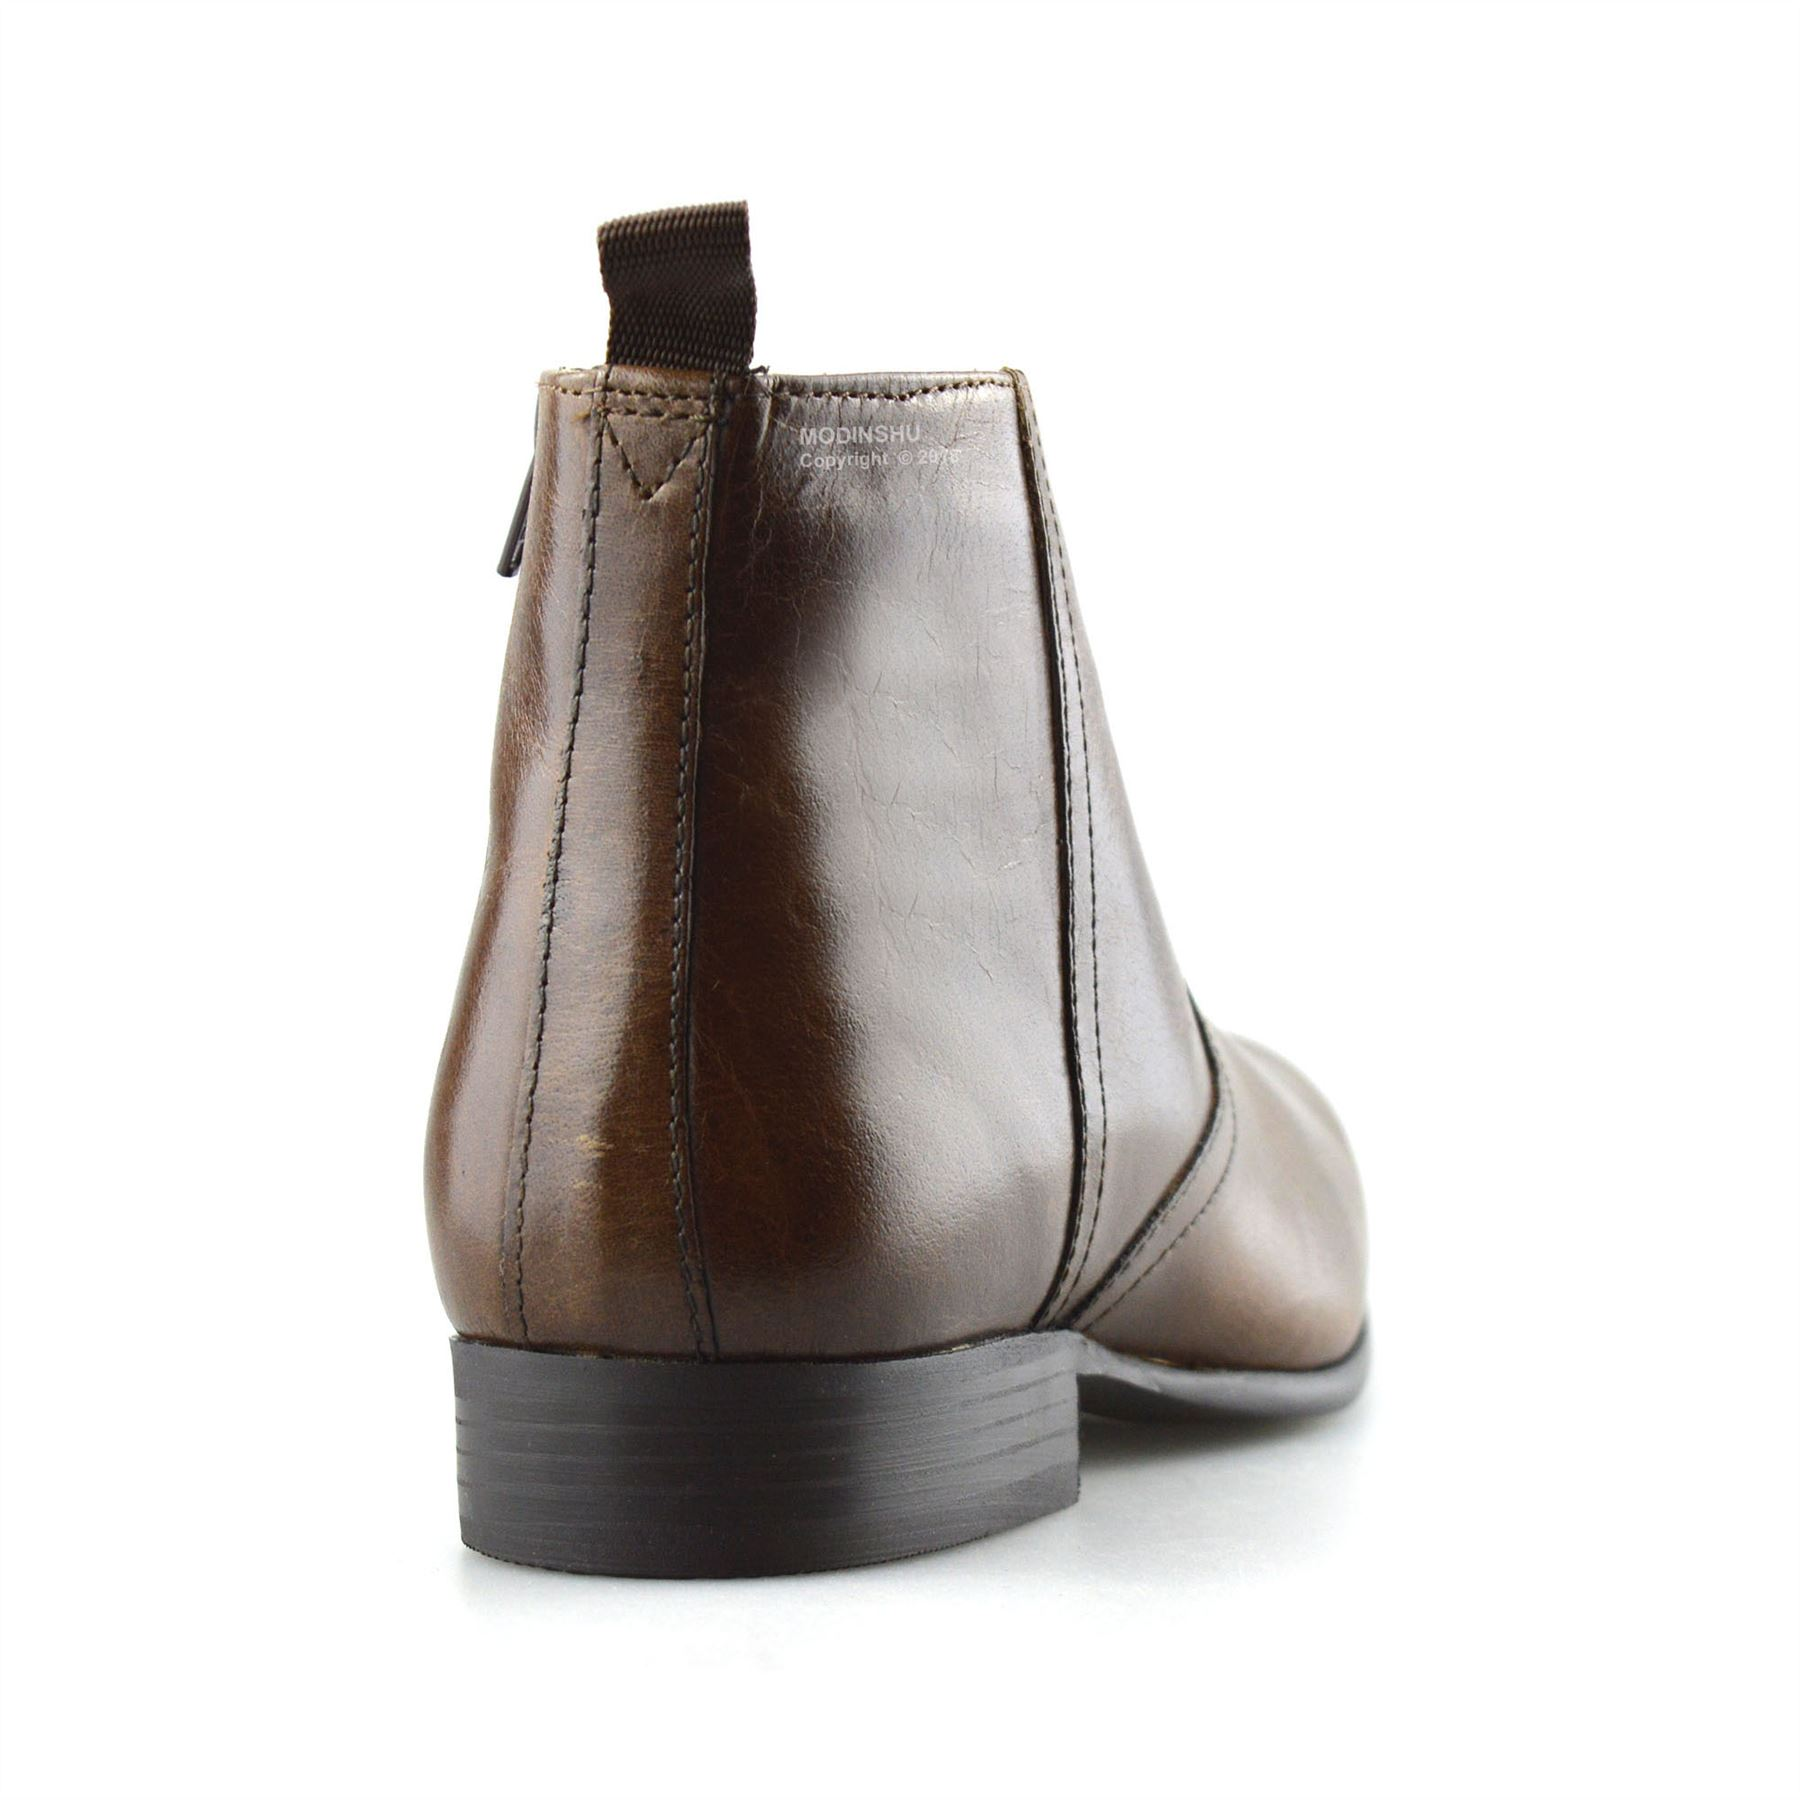 Mens-New-Leather-Zip-Up-Smart-Formal-Chelsea-Dealer-Work-Ankle-Boots-Shoes-Size thumbnail 18